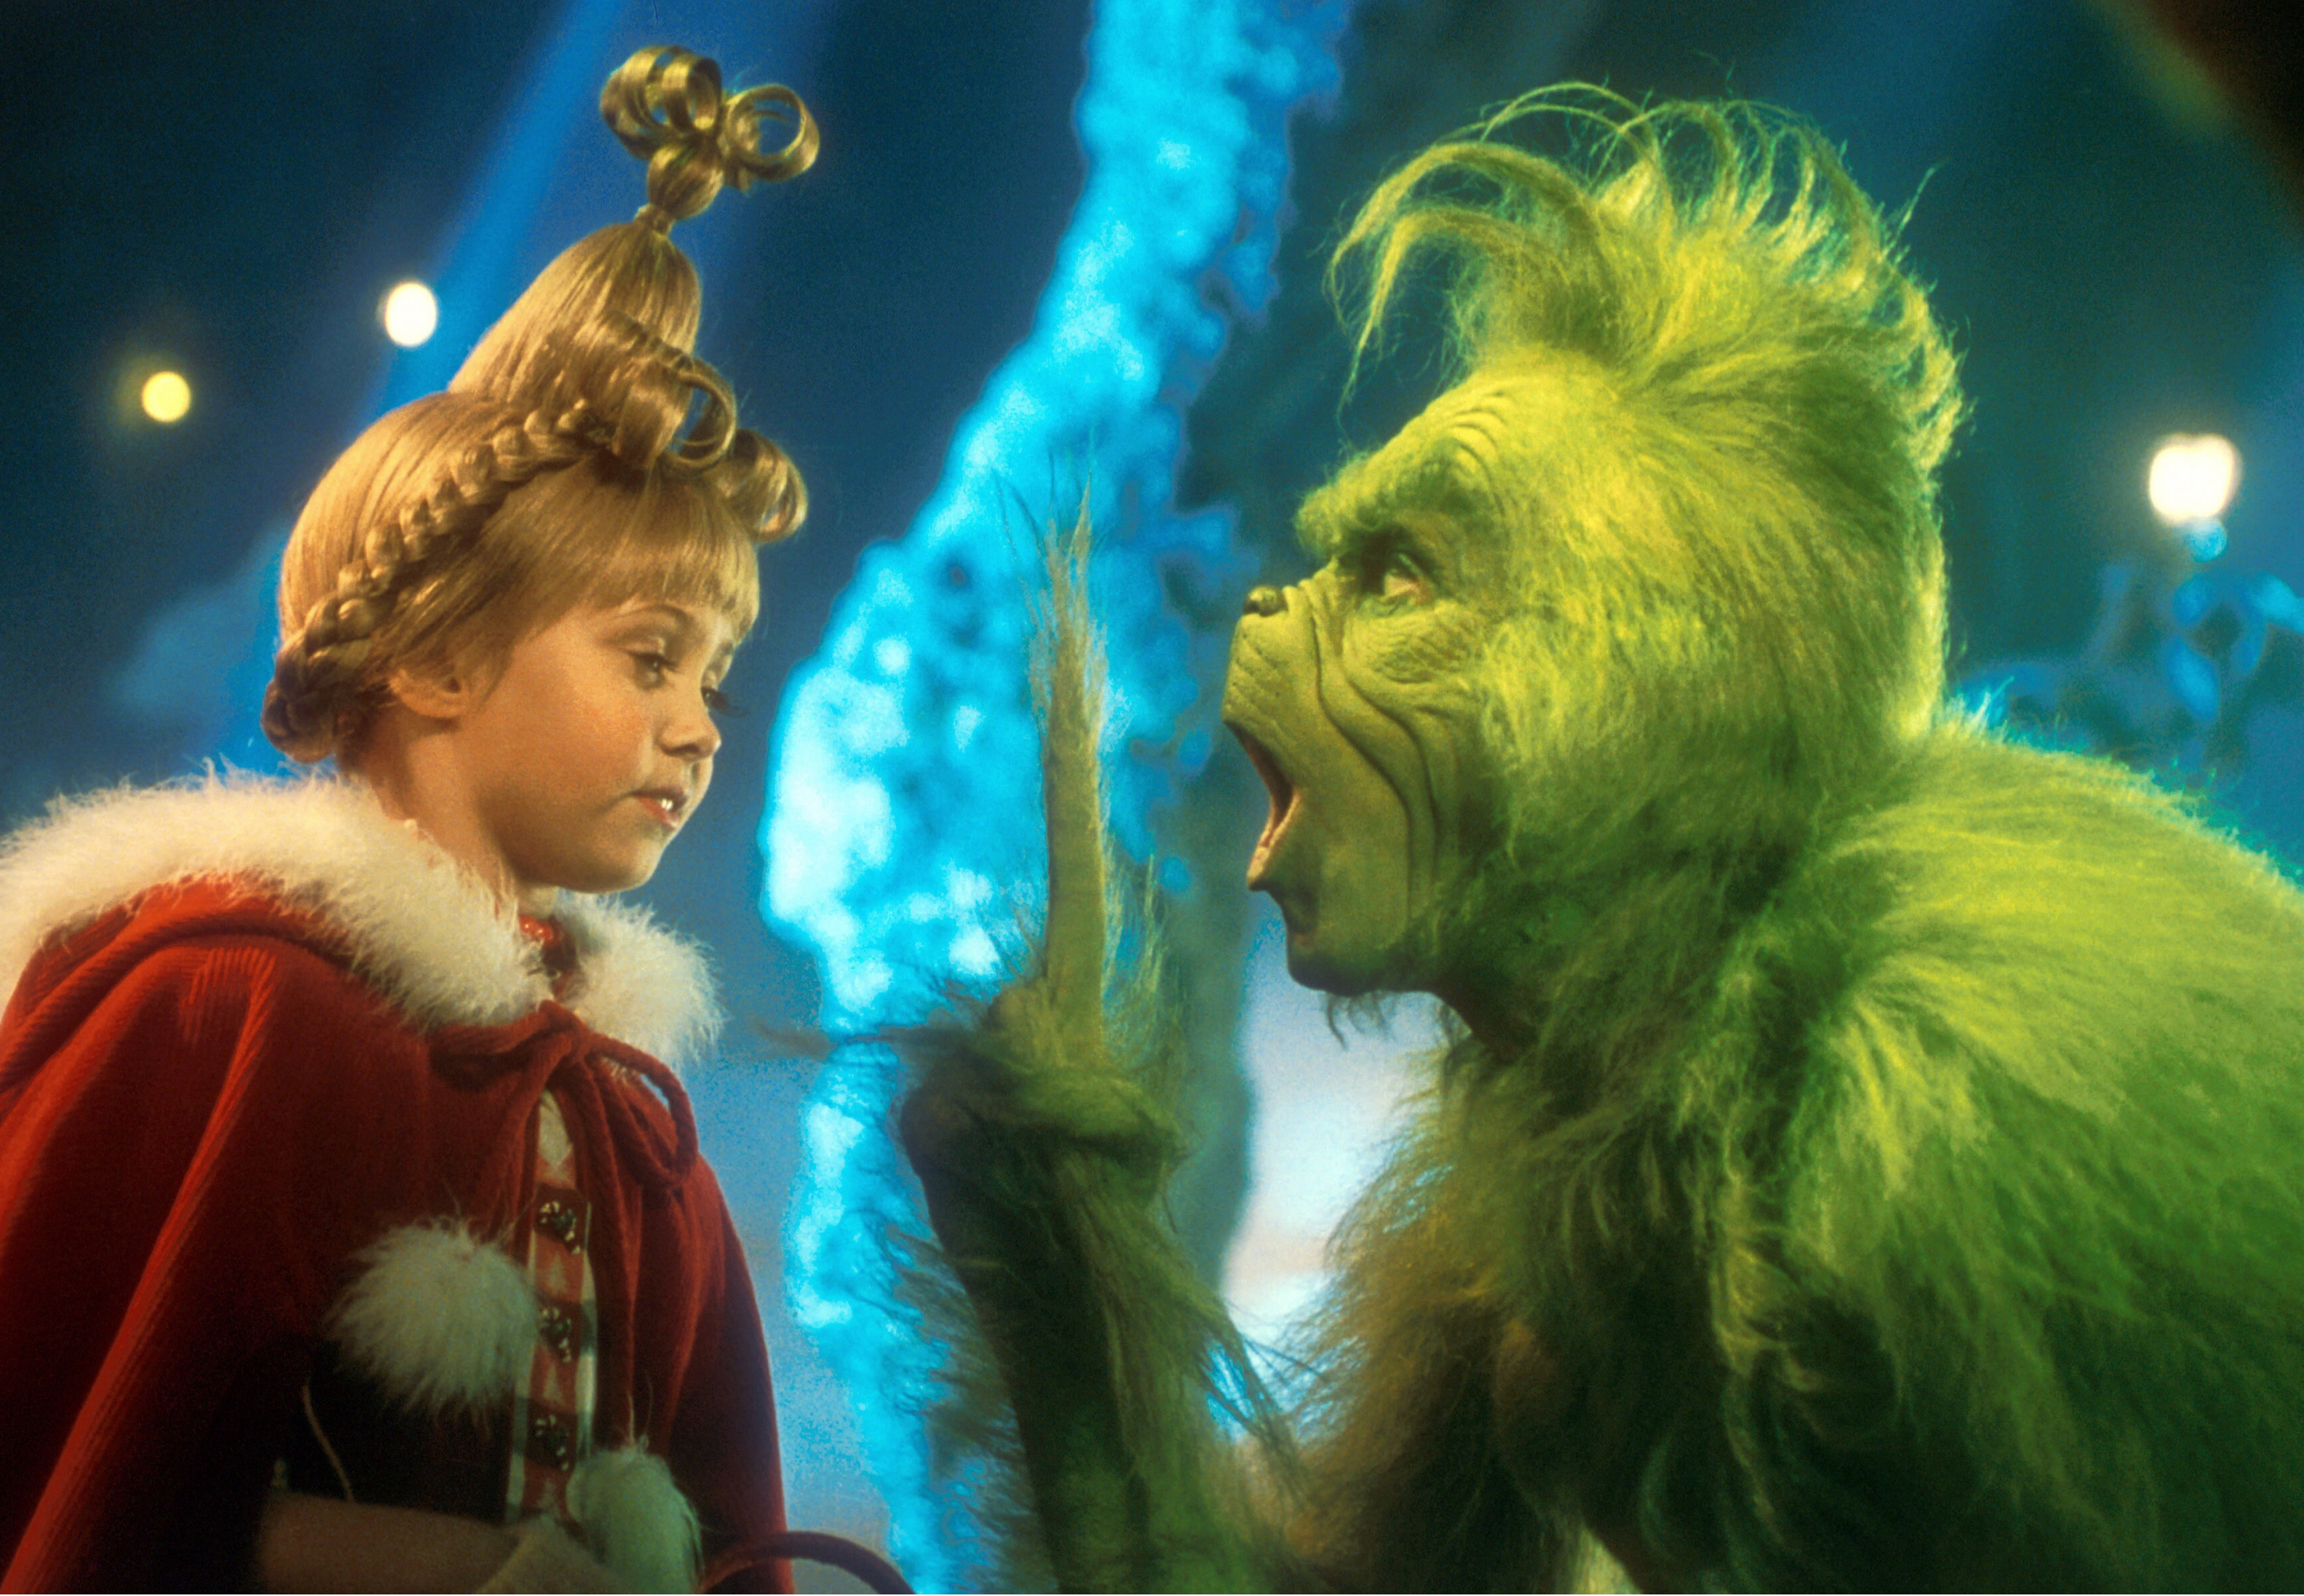 Falling For Christmas Cast.How The Grinch Stole Christmas Cast Where Are They Now